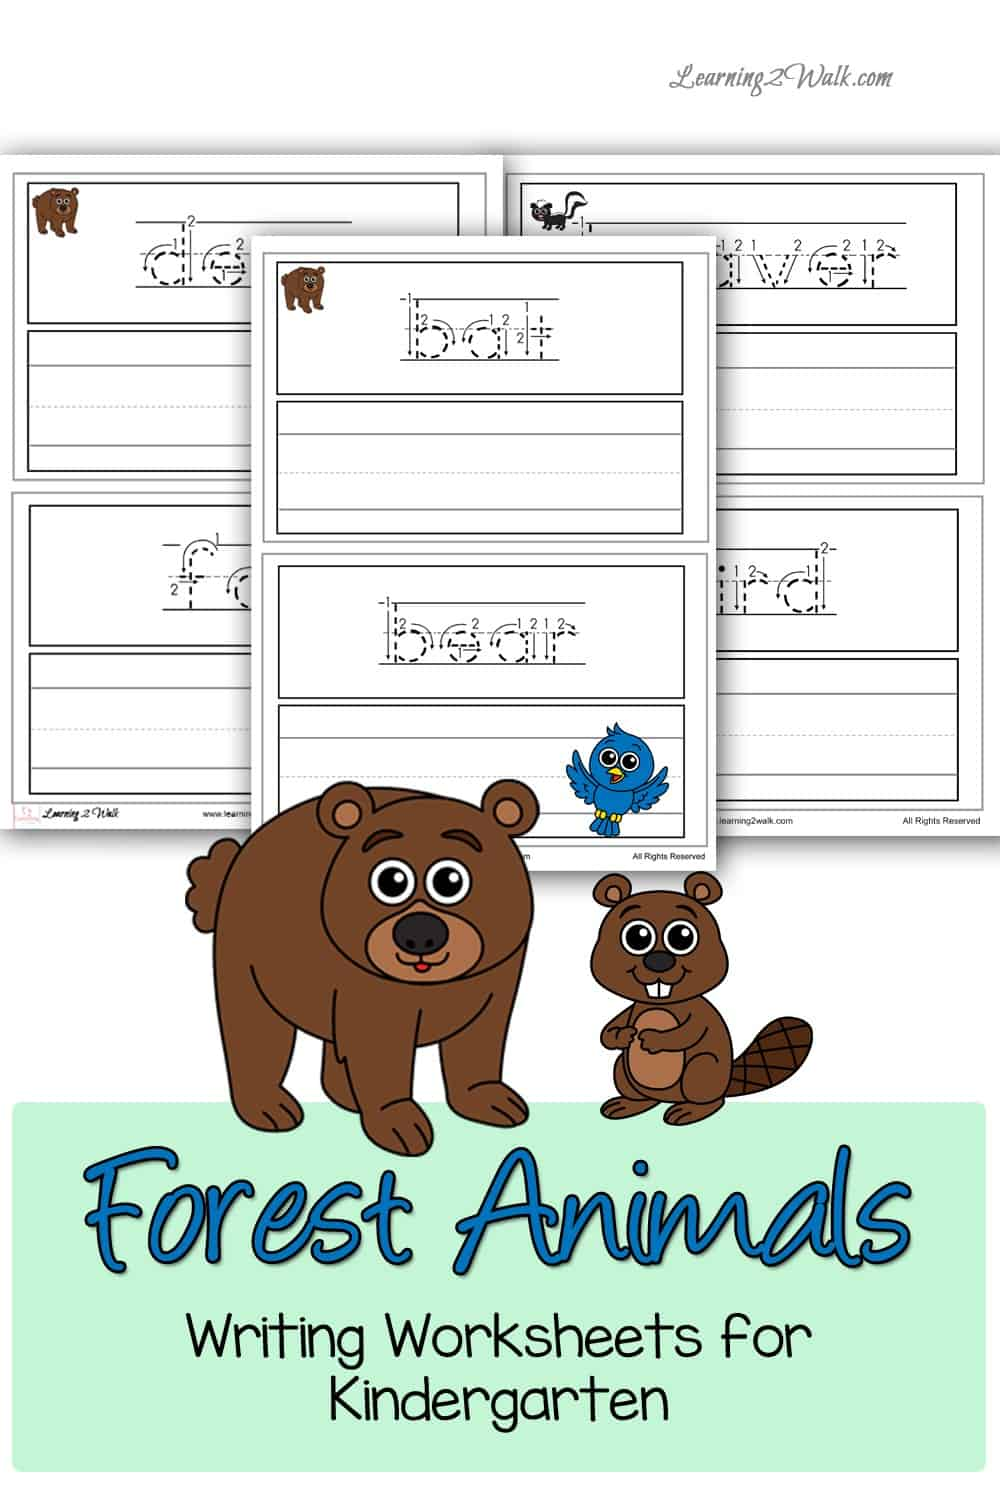 Working on increasing your student's forest animal vocabulary? Use these free forest animals writing worksheets for kindergarten to help.